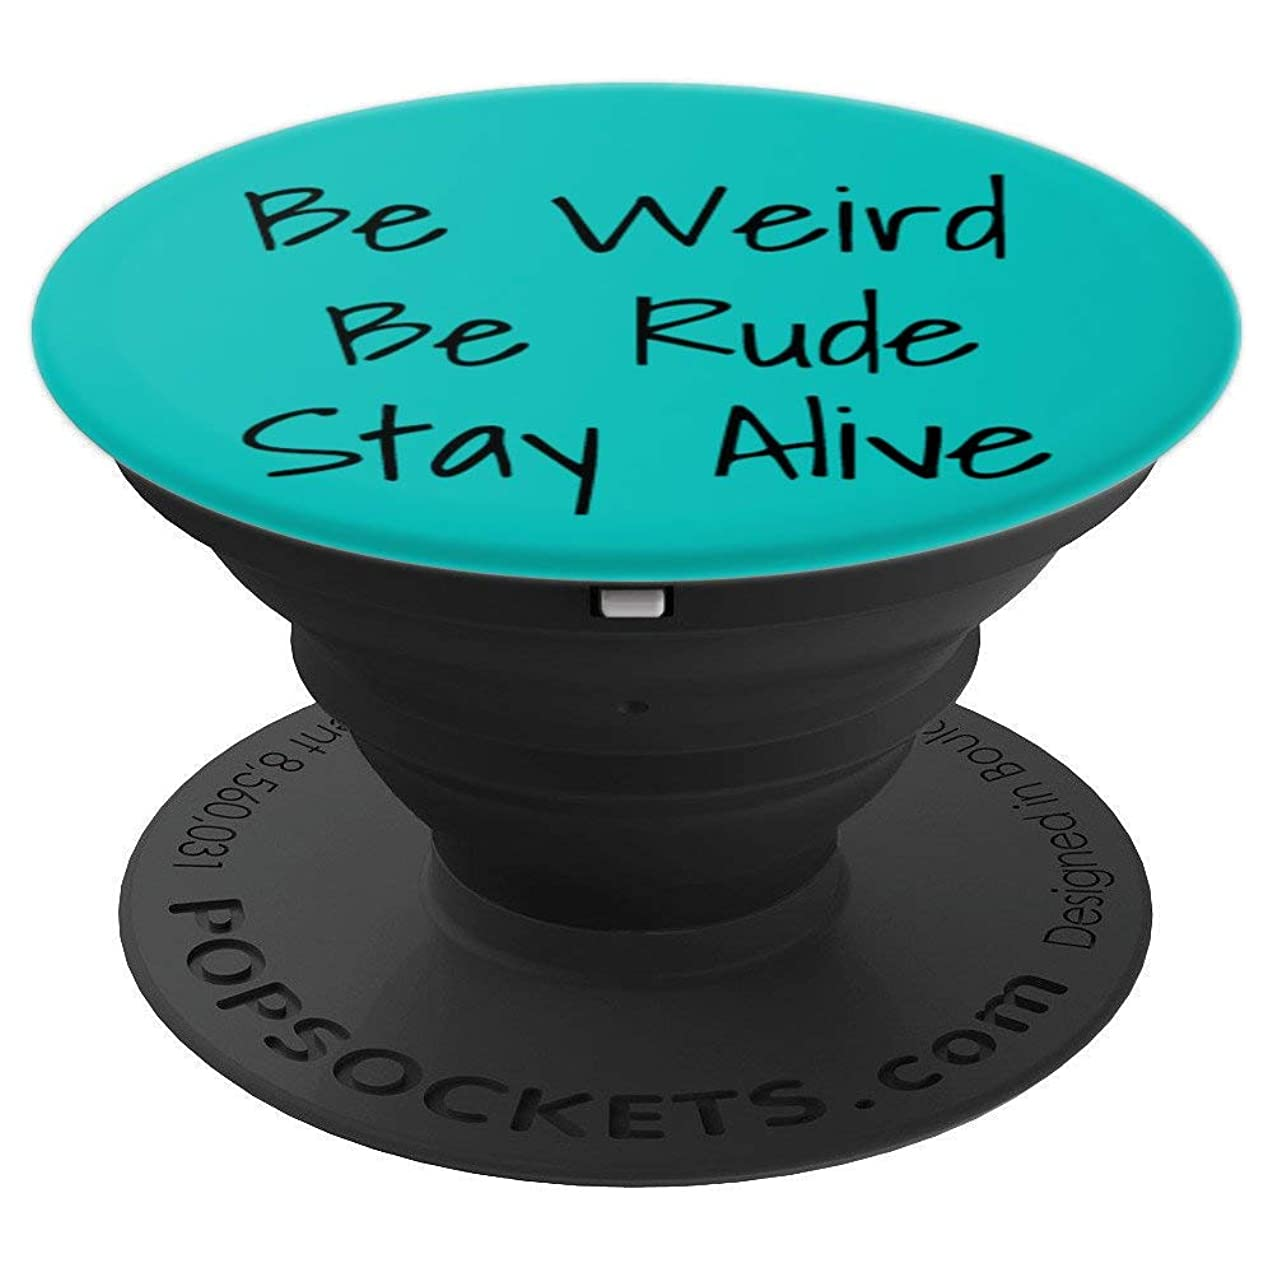 True Crime Podcast Junkie - Be Weird Be Rude Stay Alive - PopSockets Grip and Stand for Phones and Tablets